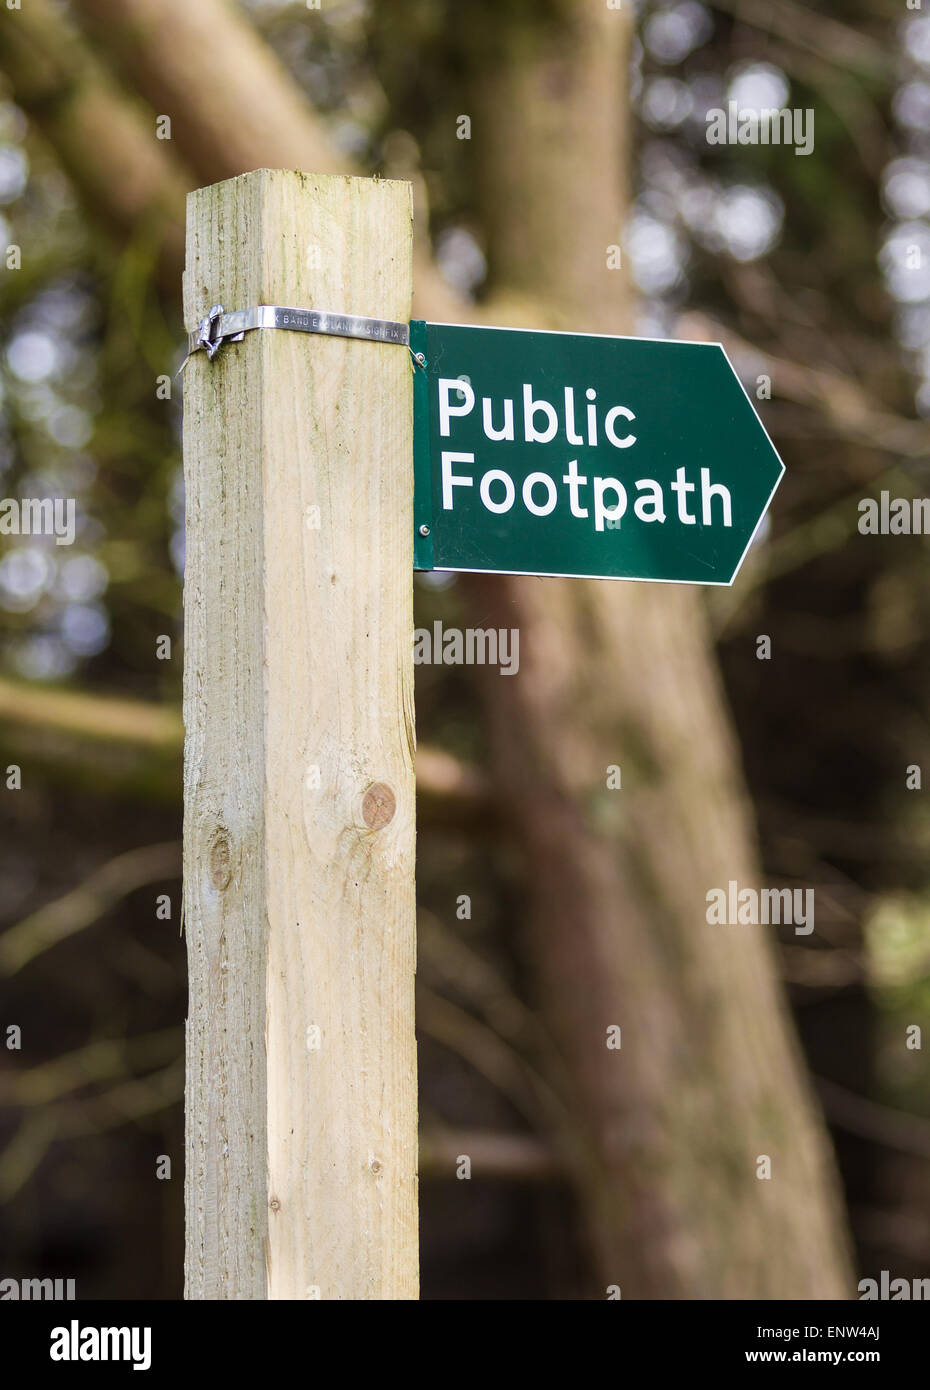 Public Footpath sign in the English Countryside - Stock Image